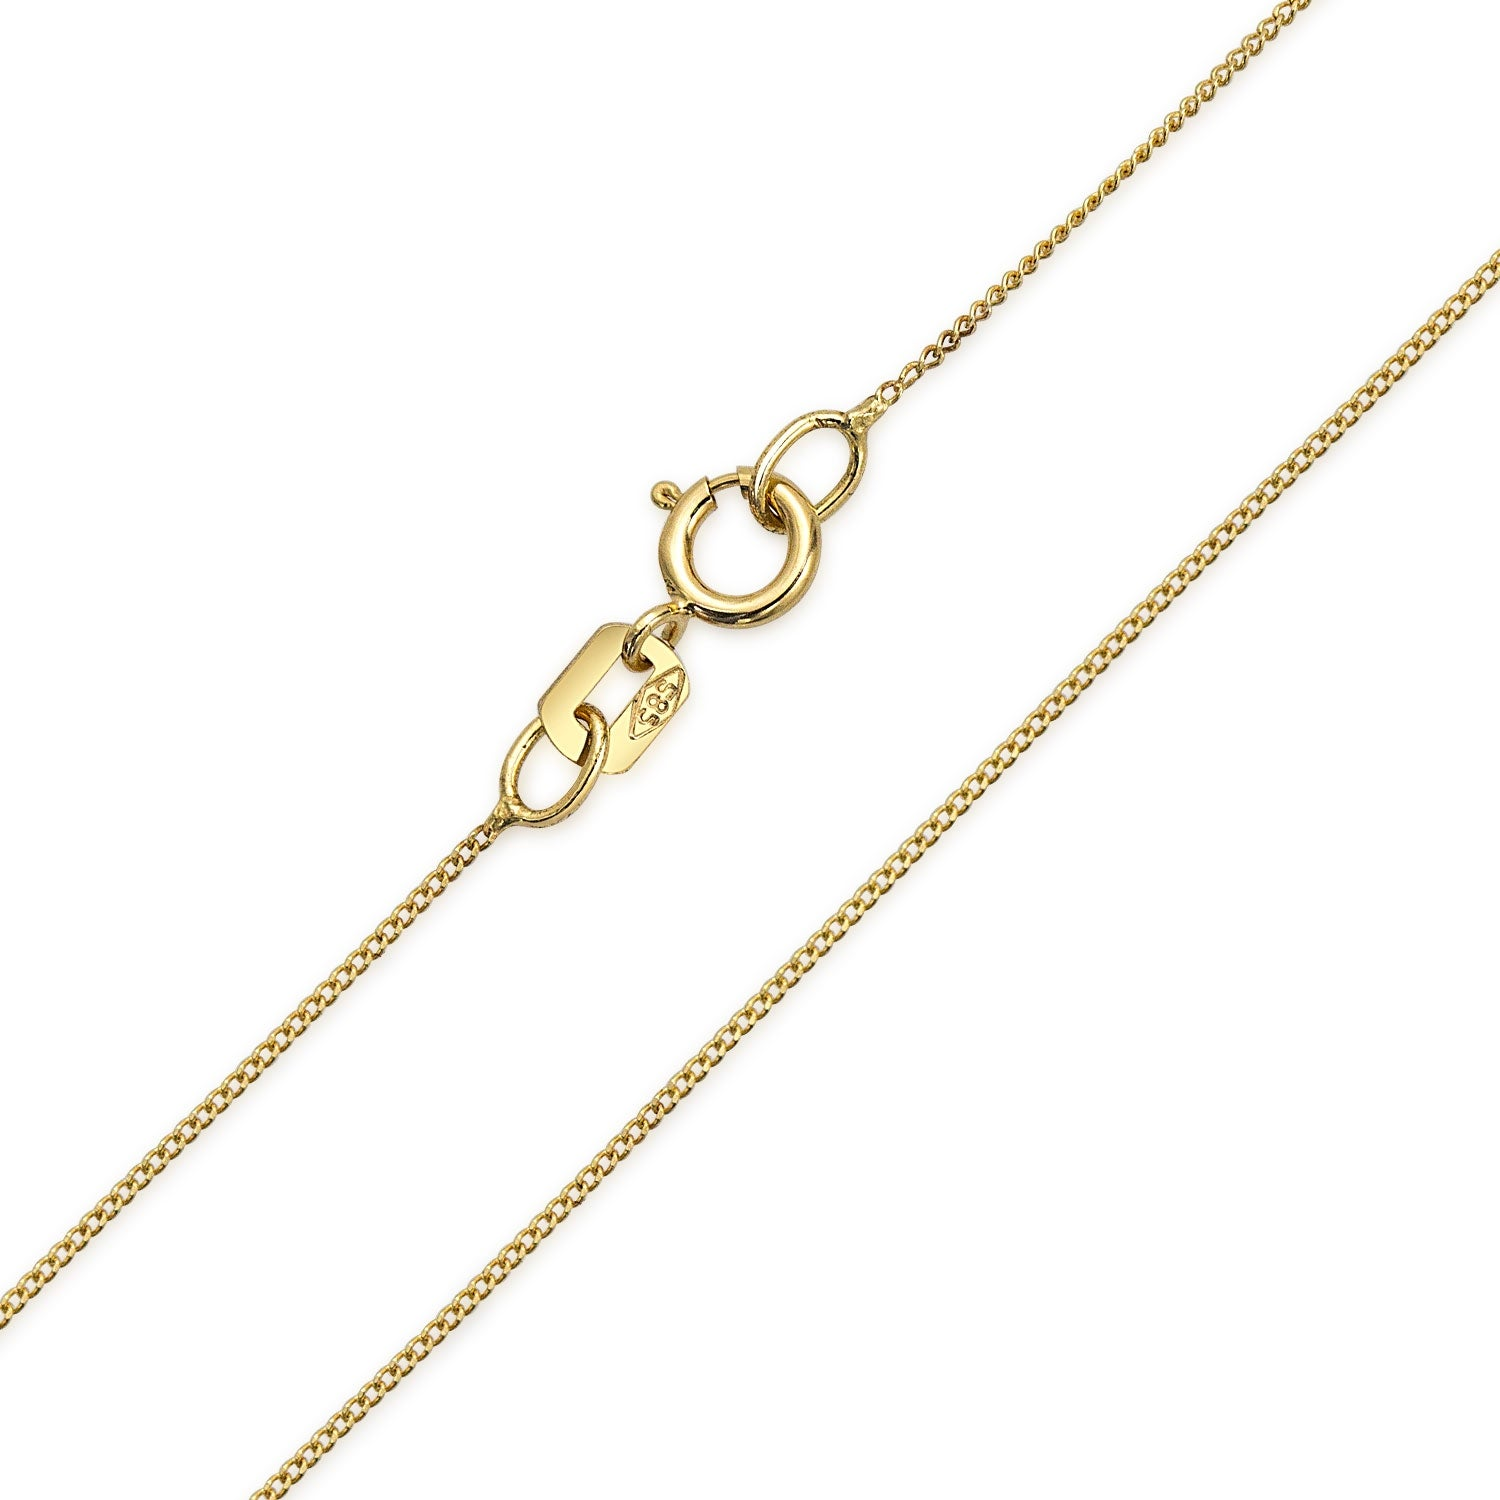 b8931889b Buy Fine Gold Chains & Necklaces Online at Overstock | Our Best Necklaces  Deals